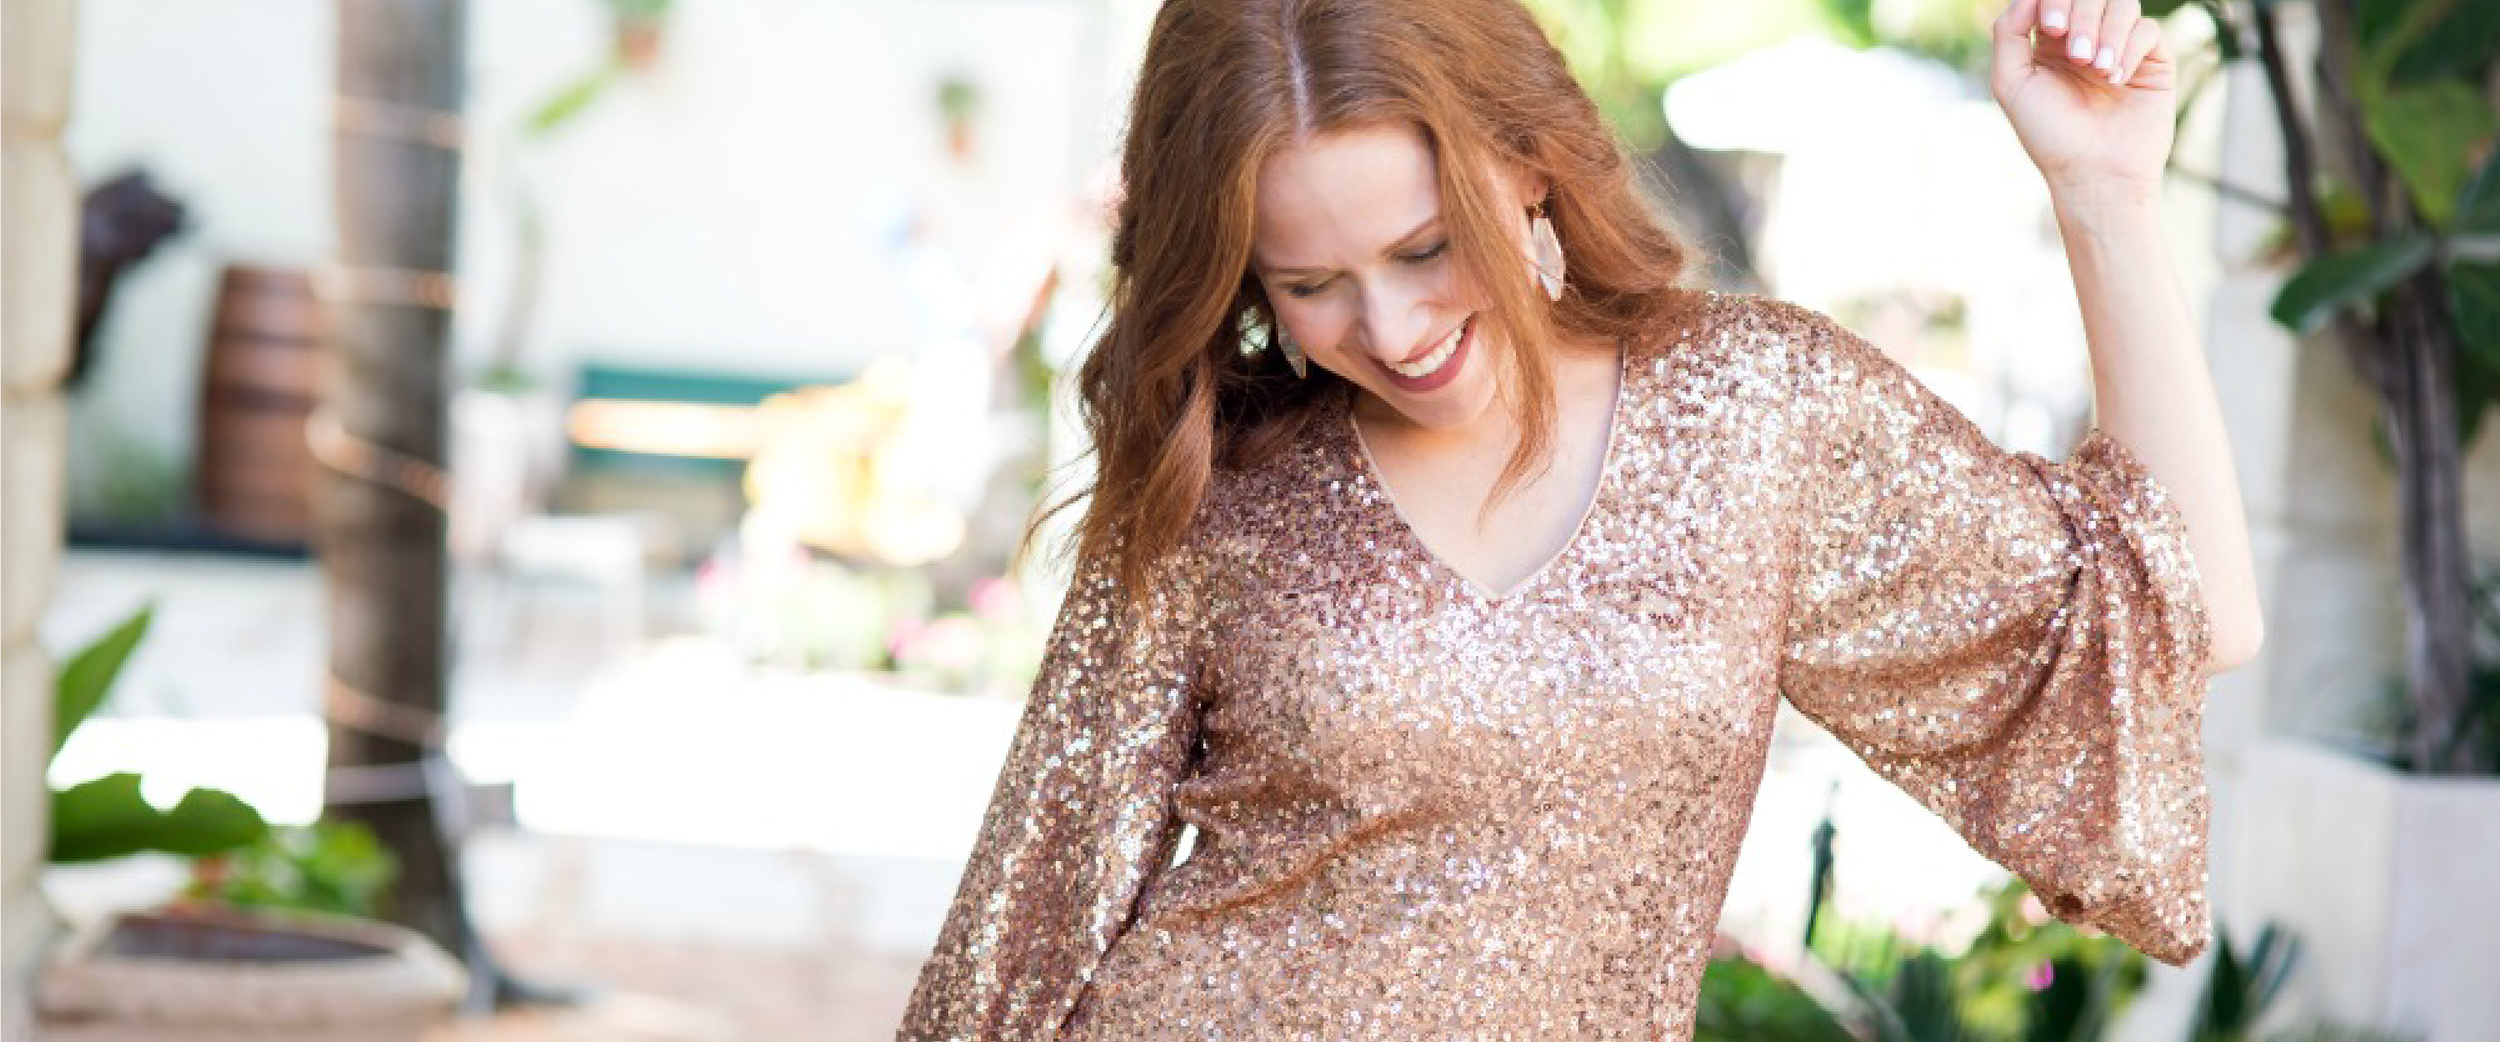 Alyson  of  The Modern Savvy  is wearing the  Veronica Shift ($138)